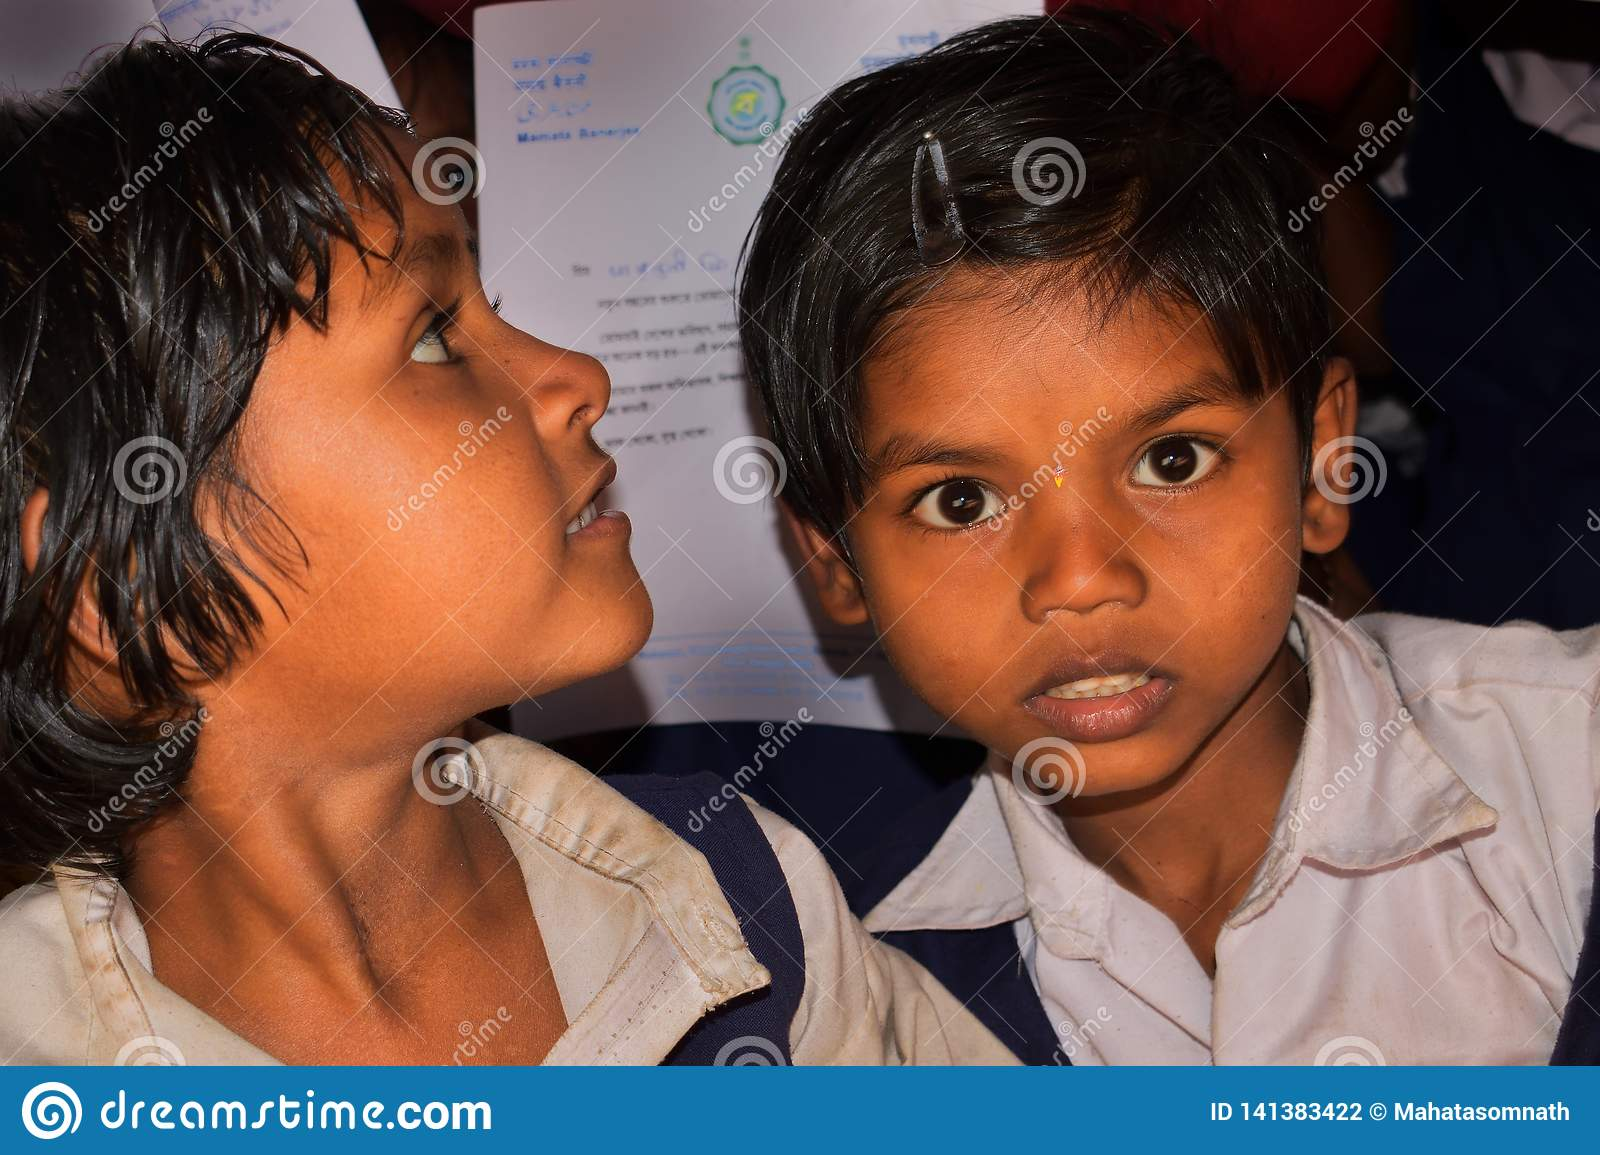 Two school girls from a rural primary school of Bengal, were looking towards the camera lens